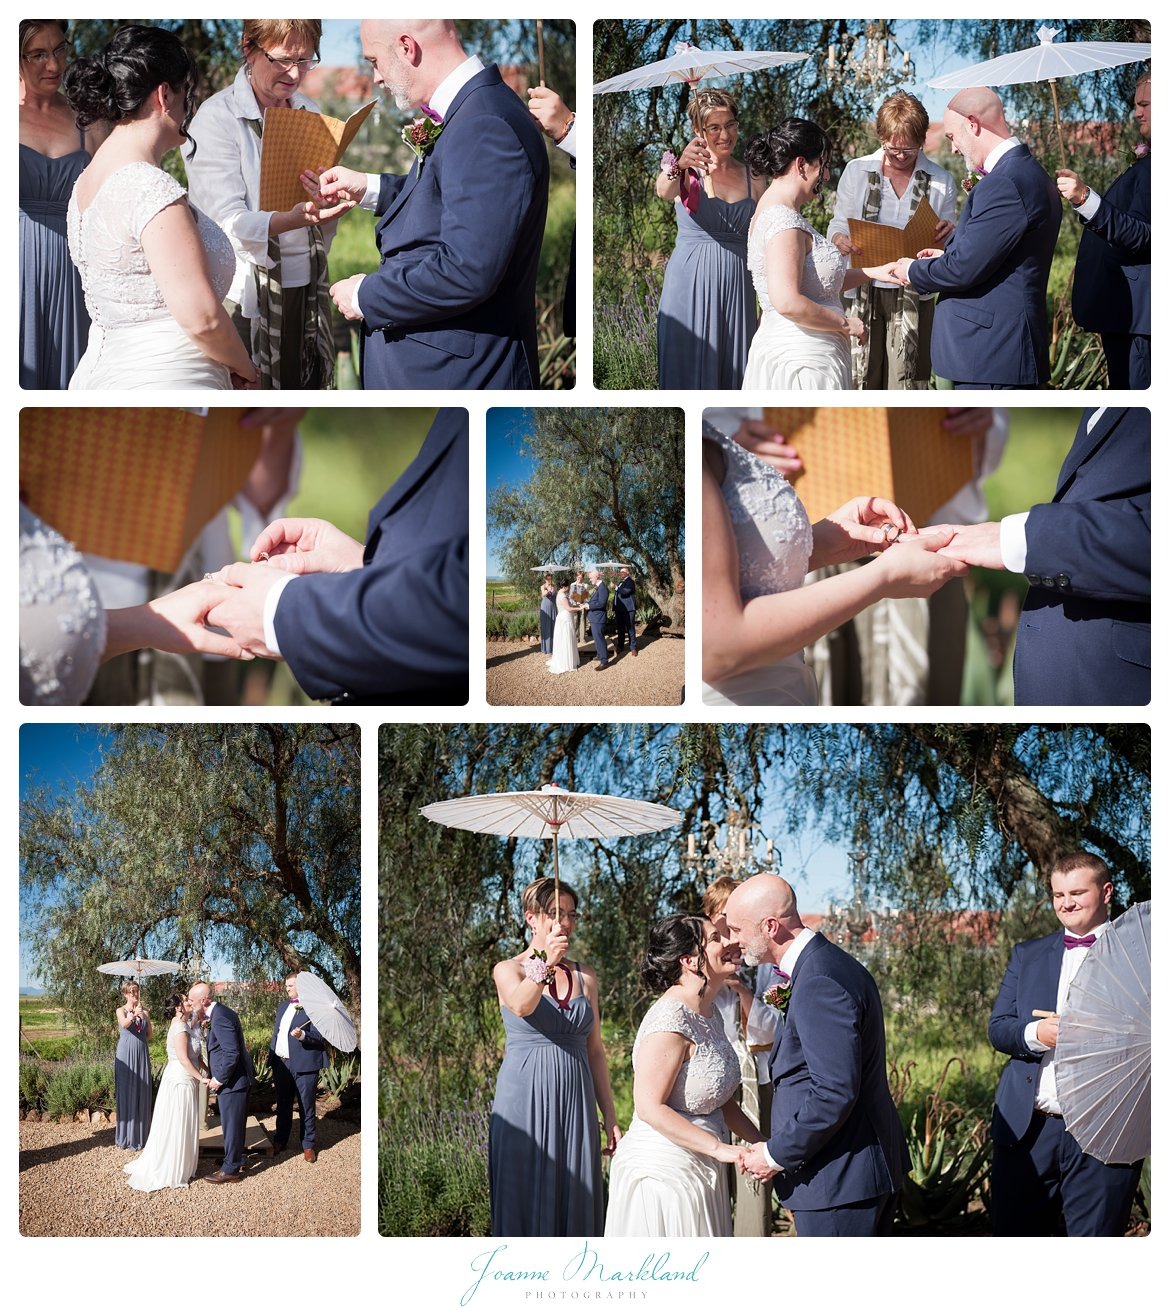 boorwater-wedding-hopefield-west-coast-cape-town-joanne-markland-photography-023